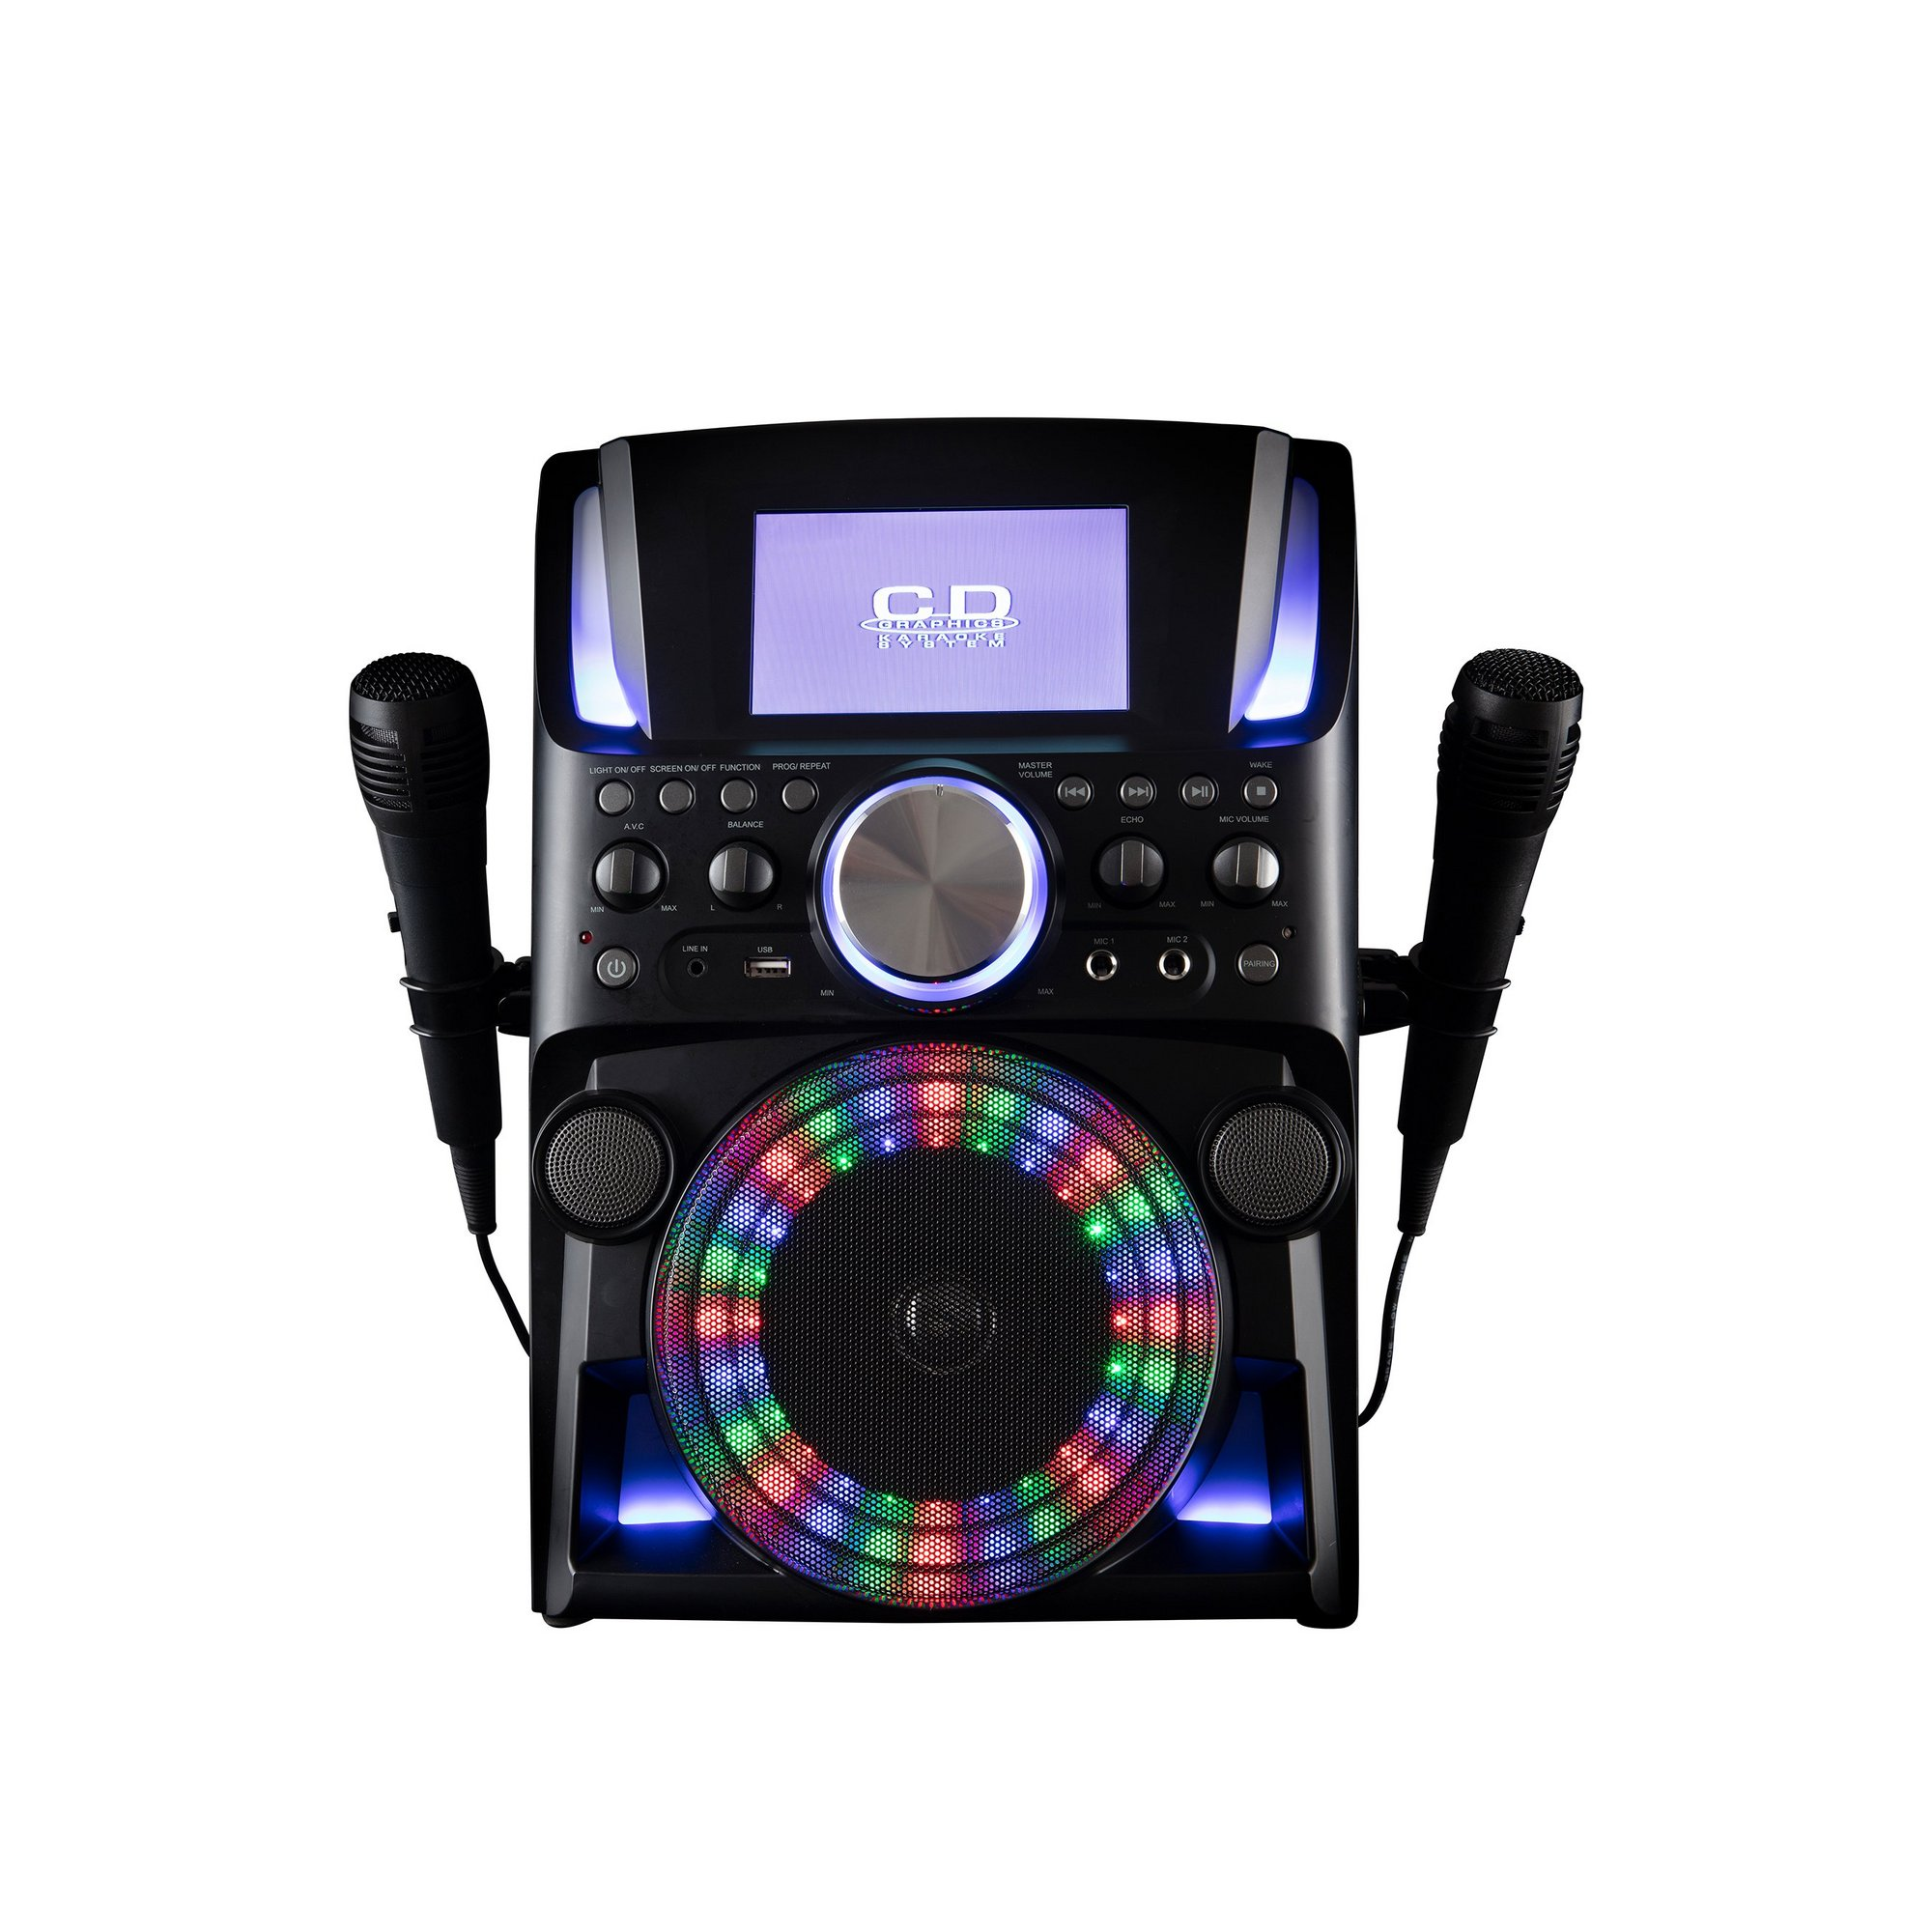 Image of Akai A58084 Bluetooth Karaoke Machine